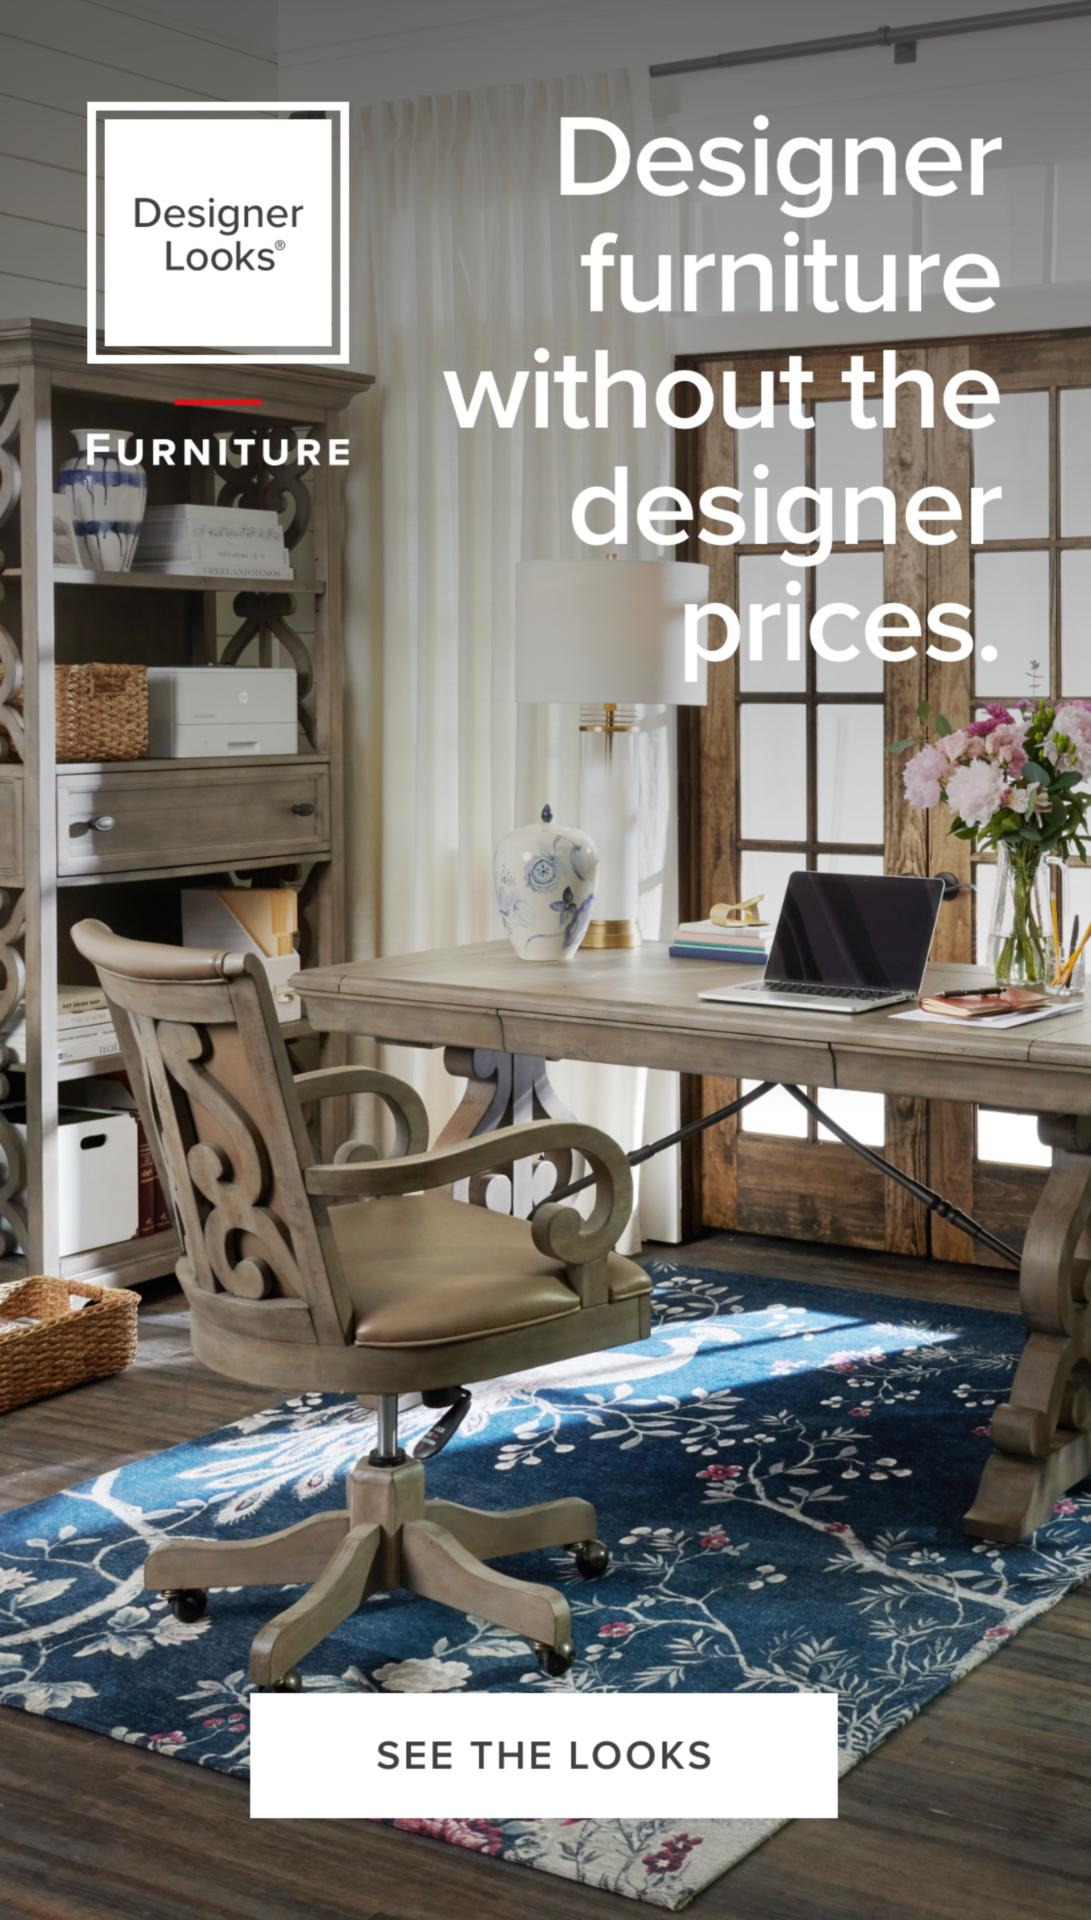 Designer Looks Furniture Without the Designer Prices - See the Looks